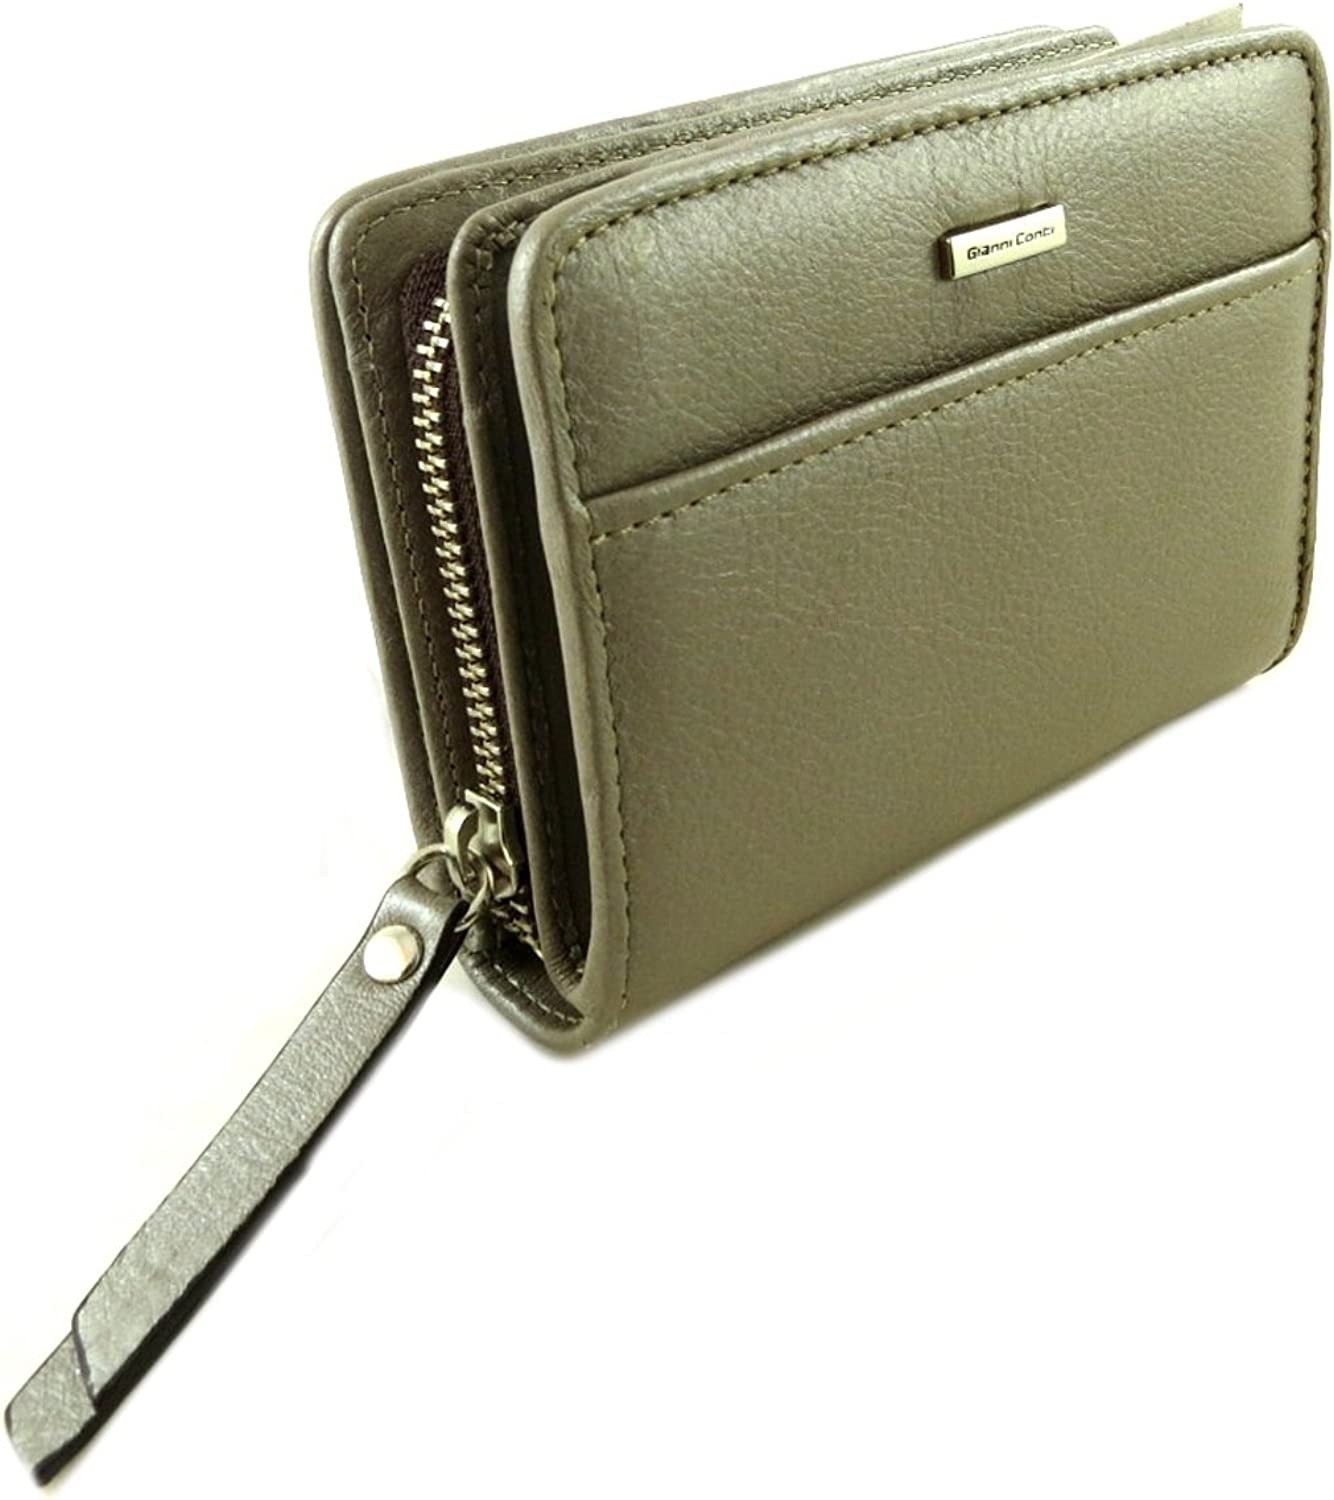 Gianni Conti [P9867]  Leather wallet 'Gianni Conti' taupe  13.5x10x3.5 cm (5.31''x3.94''x1.38'').